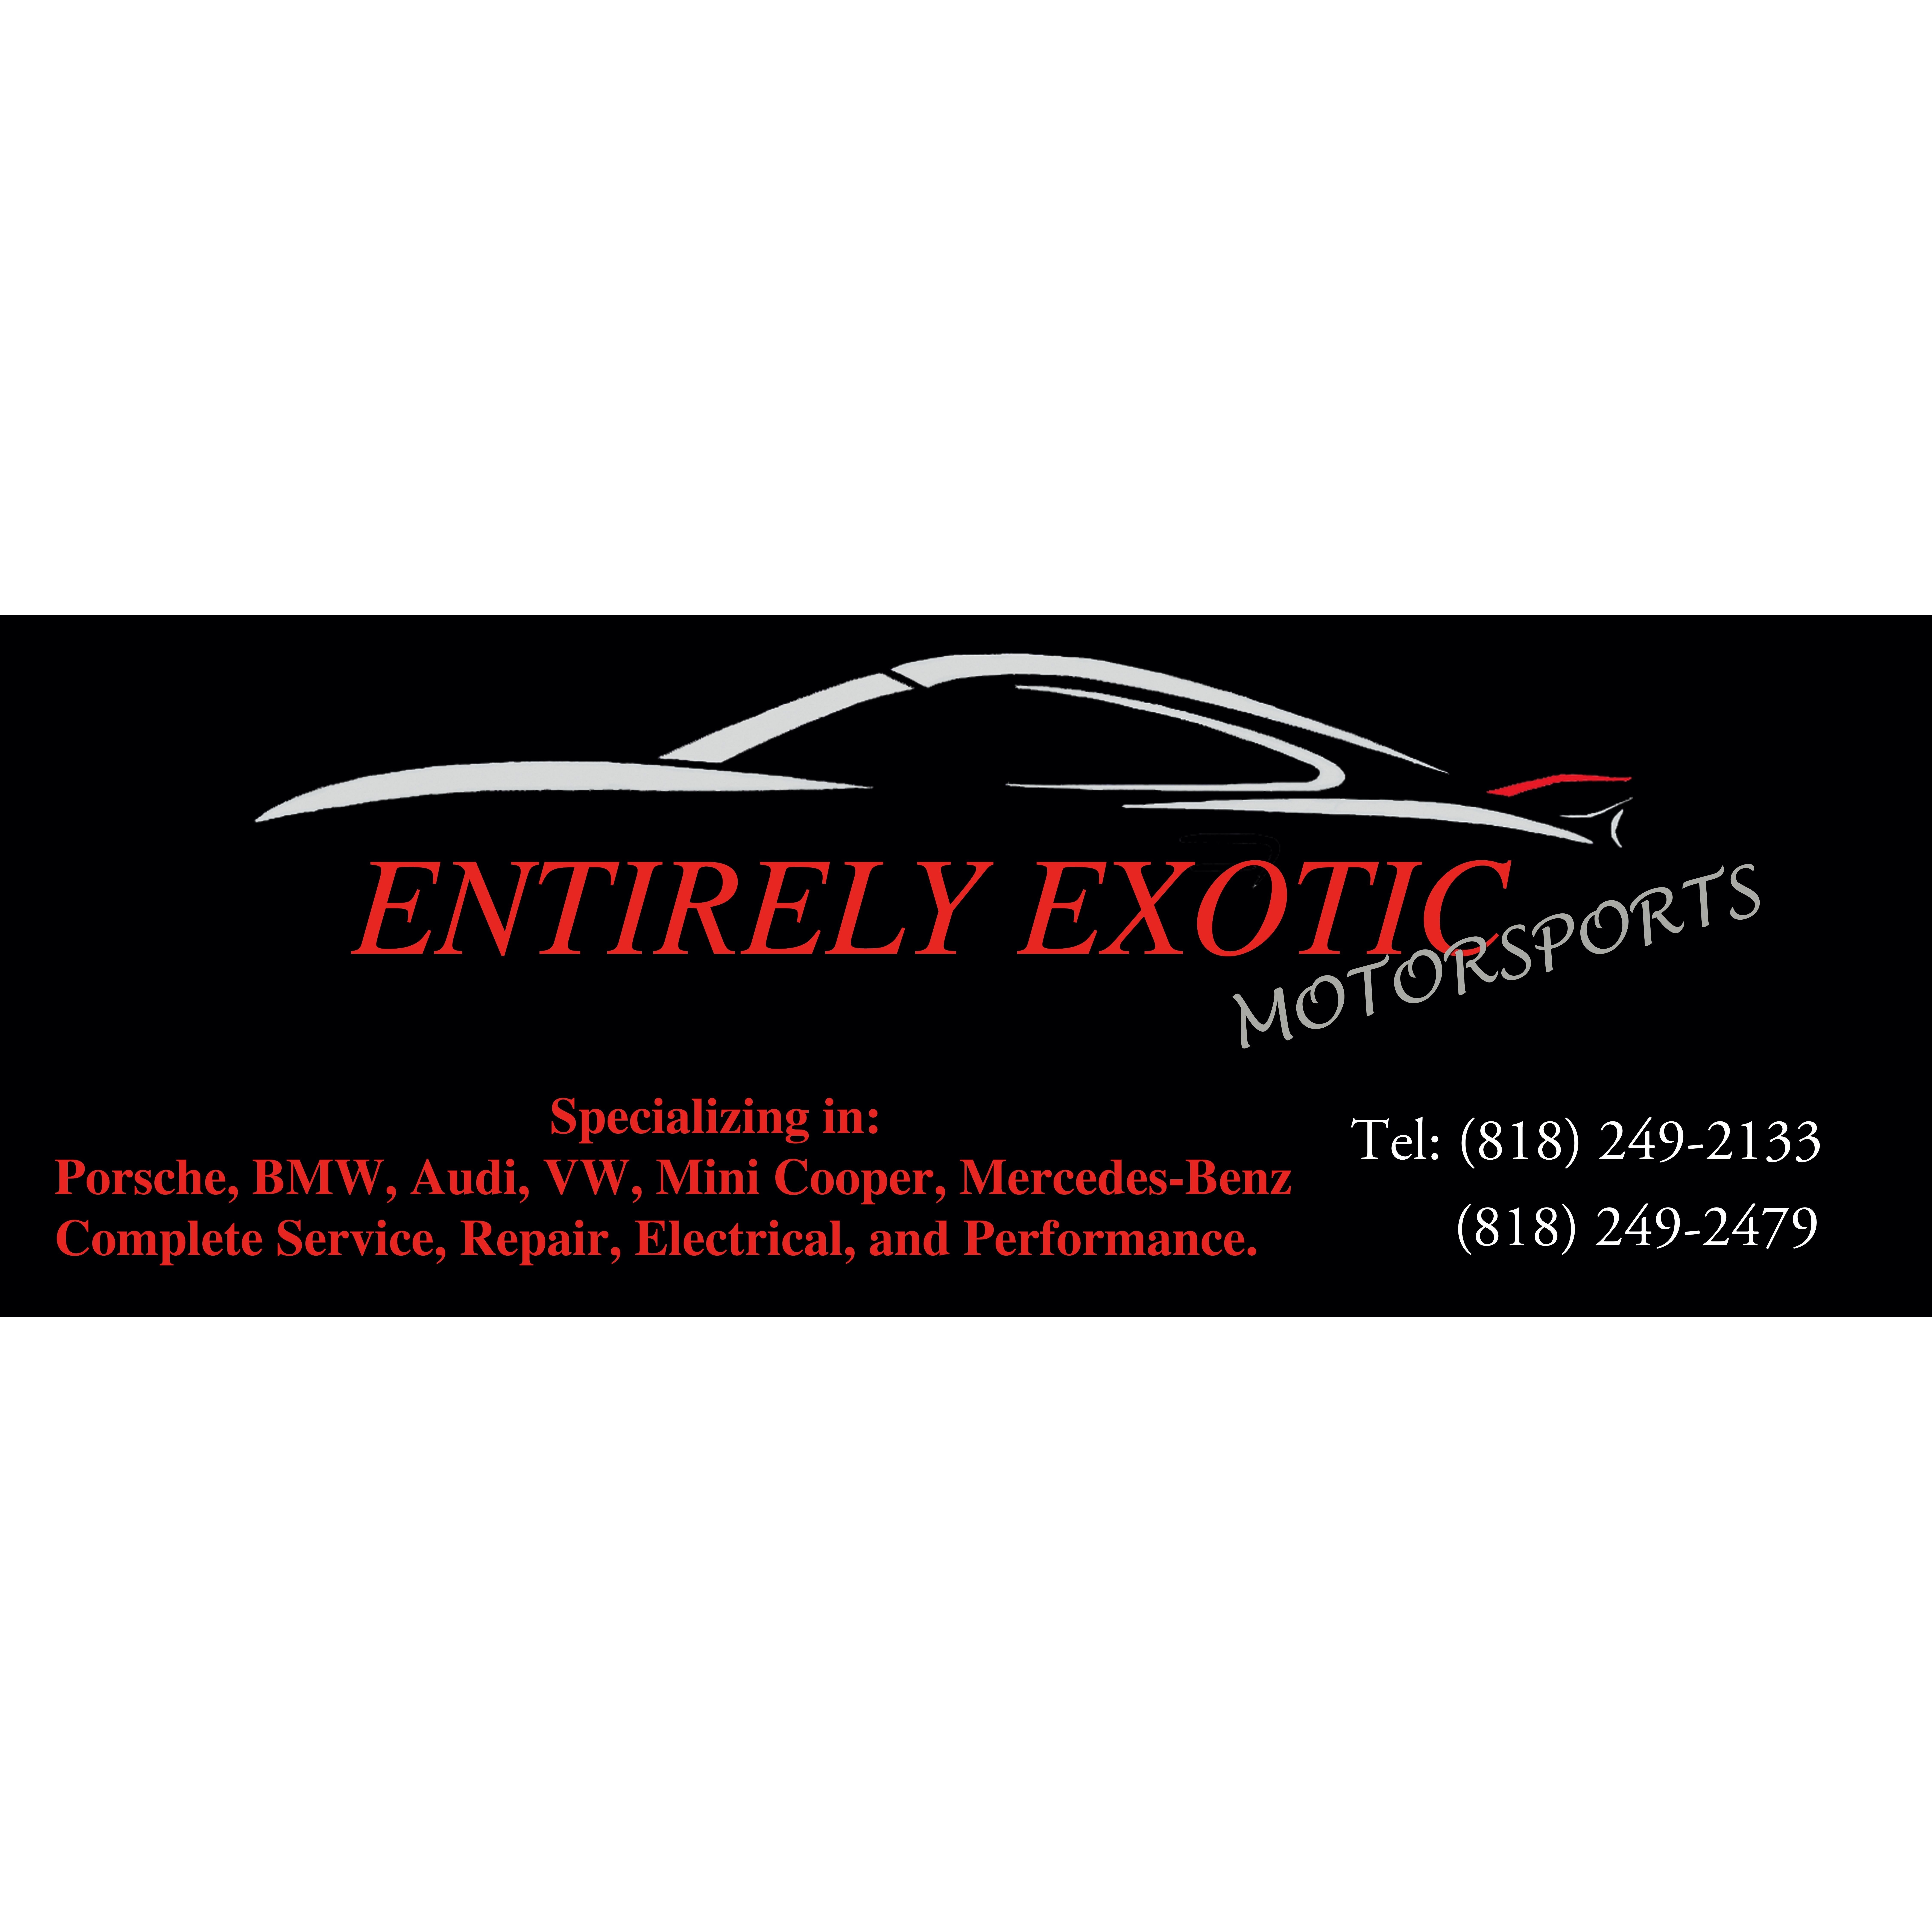 Entirely exotic motorsports in glendale ca 91208 for Glendale mercedes benz service